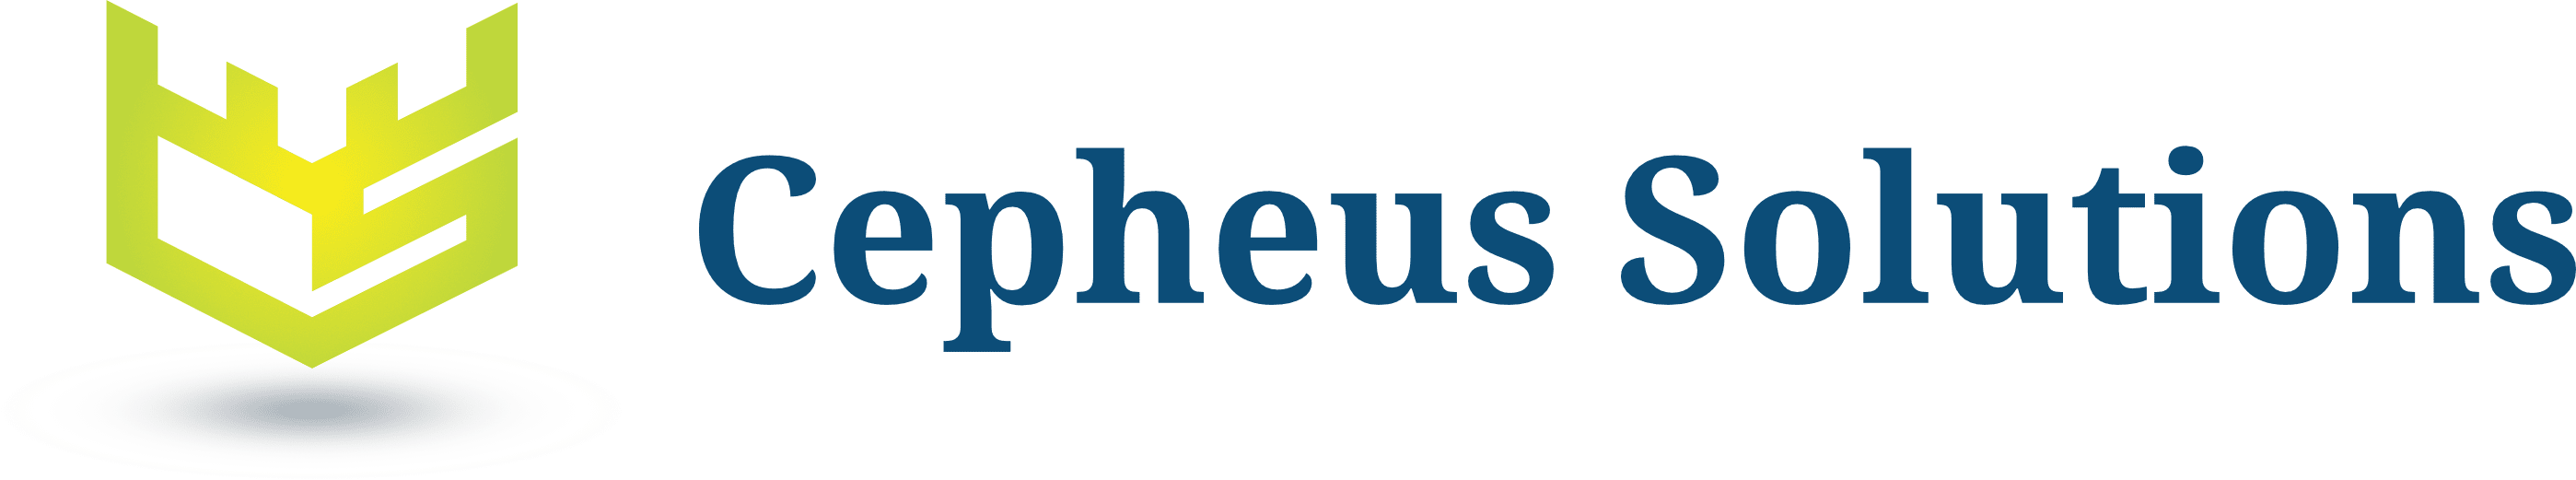 https://cepheussolutions.com/wp-content/uploads/2019/08/cs-logo-full.png